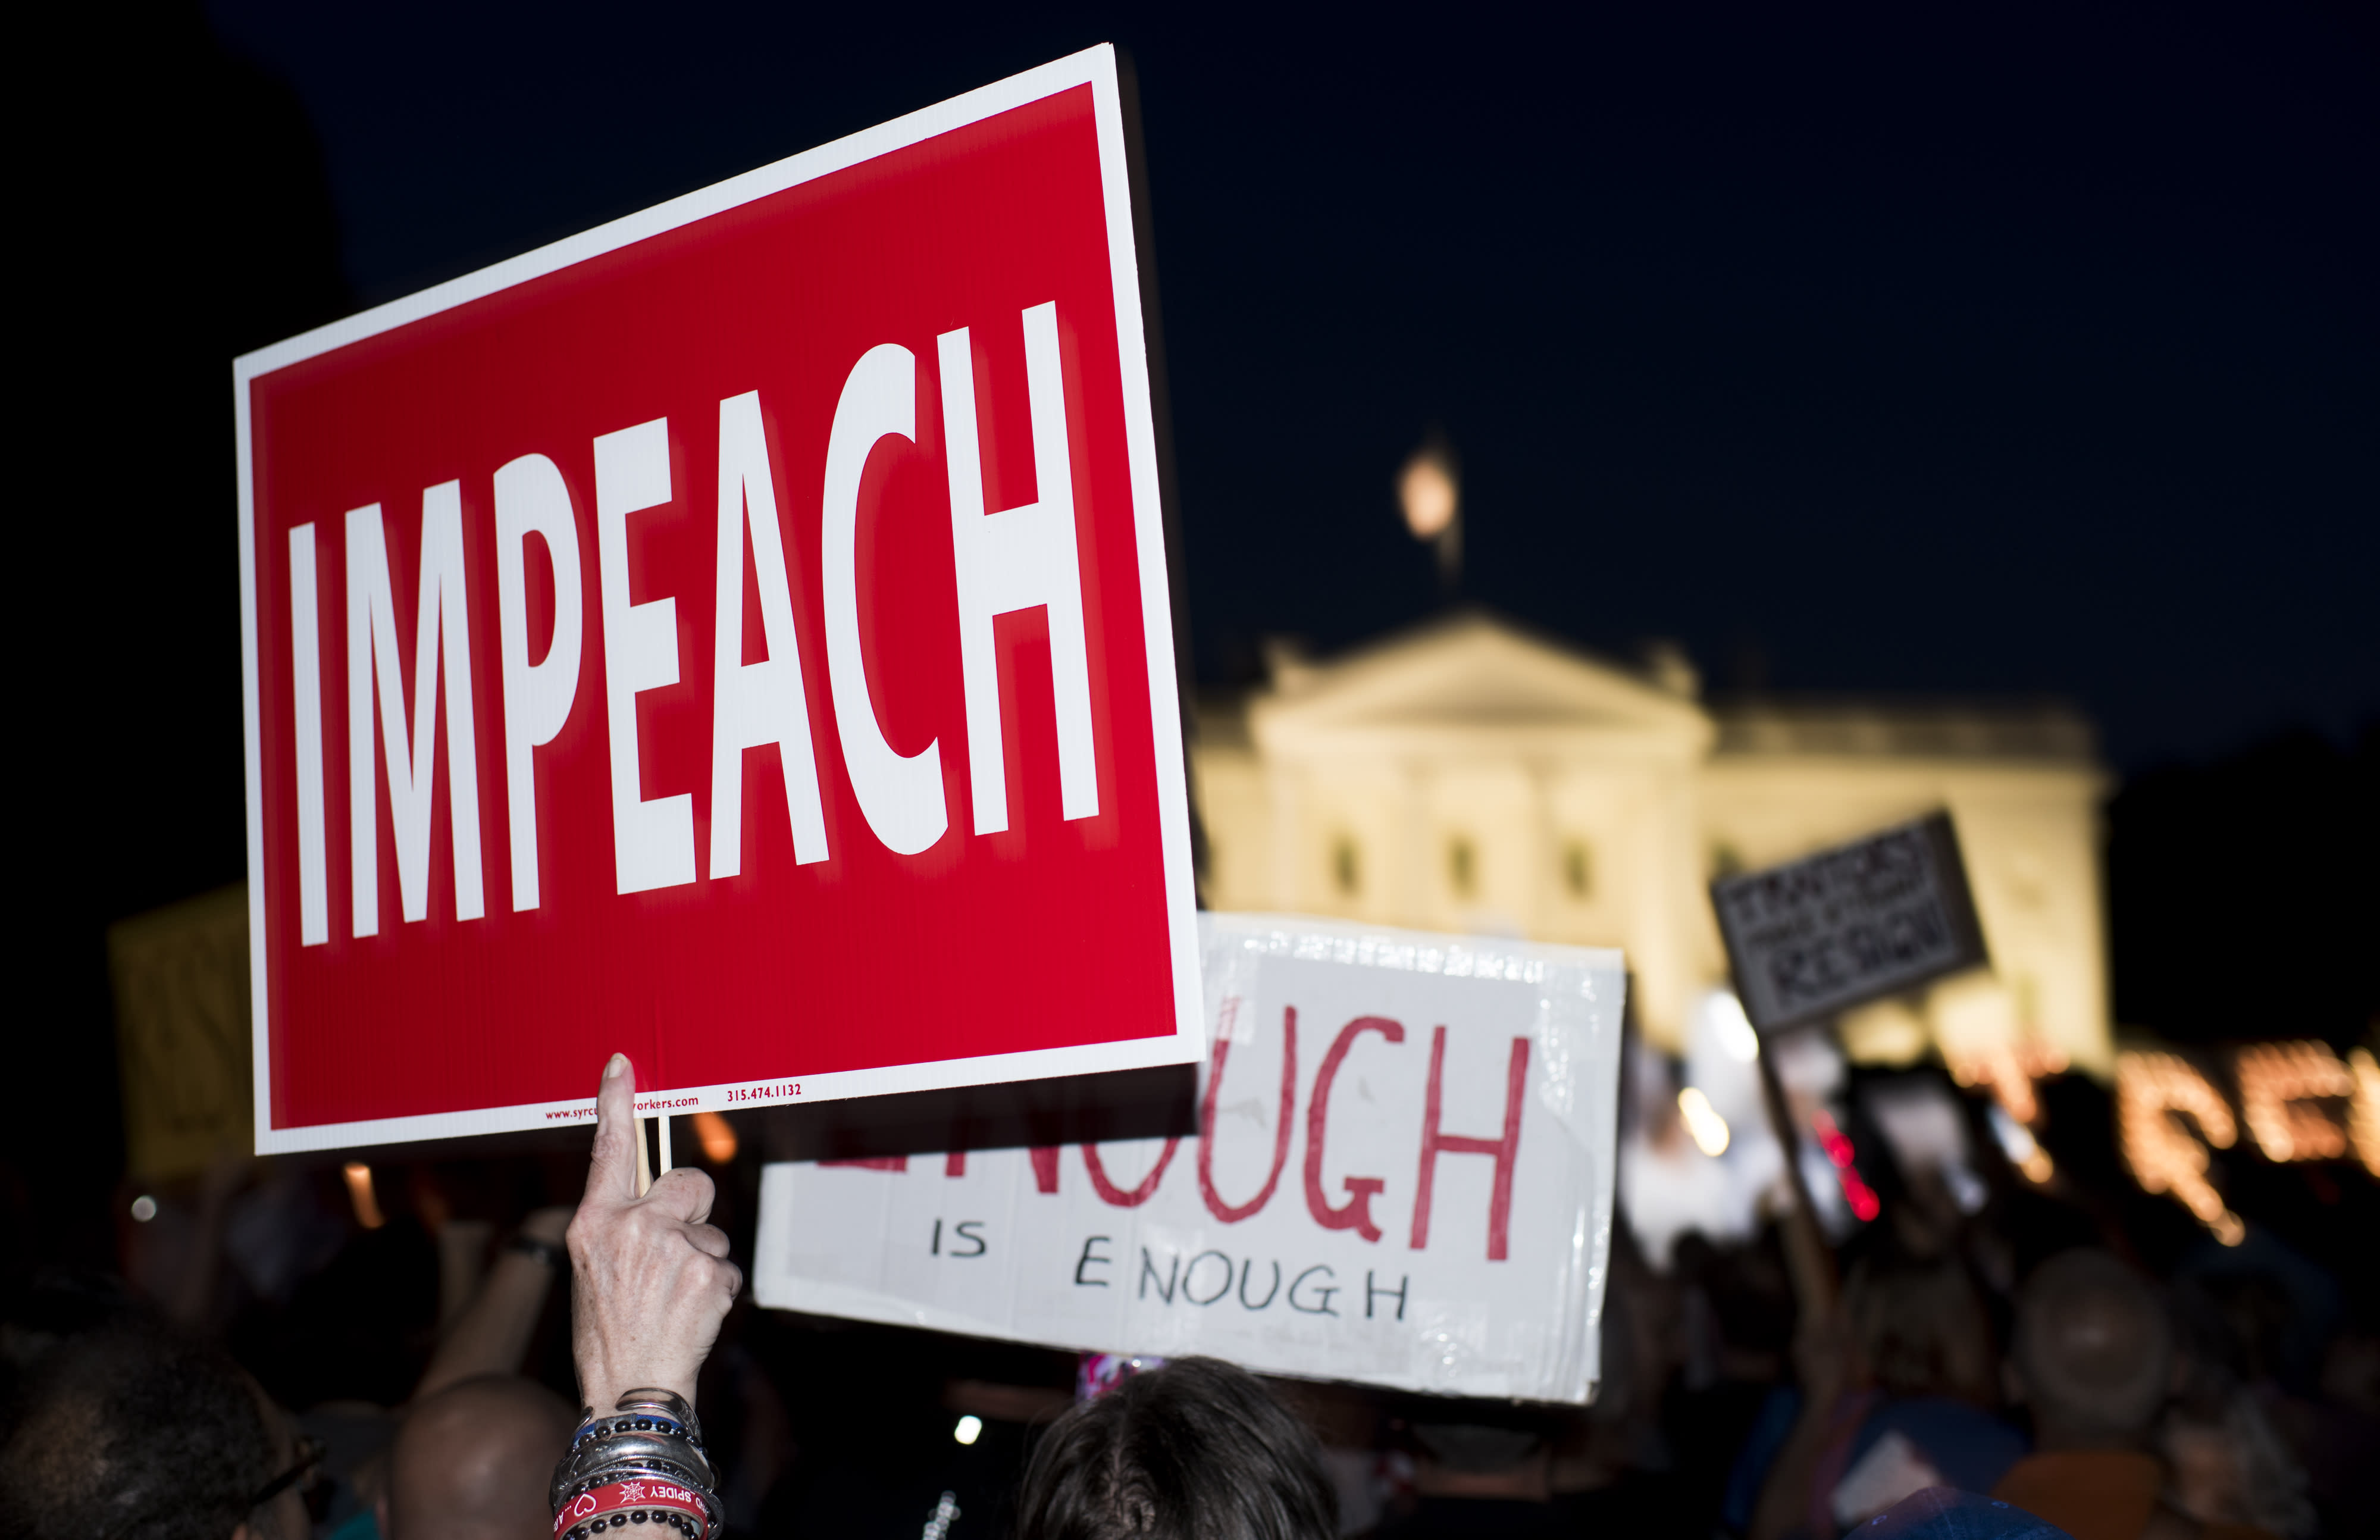 <p>Protesters gather in front of the White House for a rally and candlelight vigil on July 18, 2018. The protest was one of more than 100 events around the country following 12 new indictments in special counsel Robert Mueller's Russia probe and President Trump's comments in Helsinki during the summit with Russian President Vladimir Putin. (Photo: Bill Clark/CQ Roll Call/Getty Images) </p>